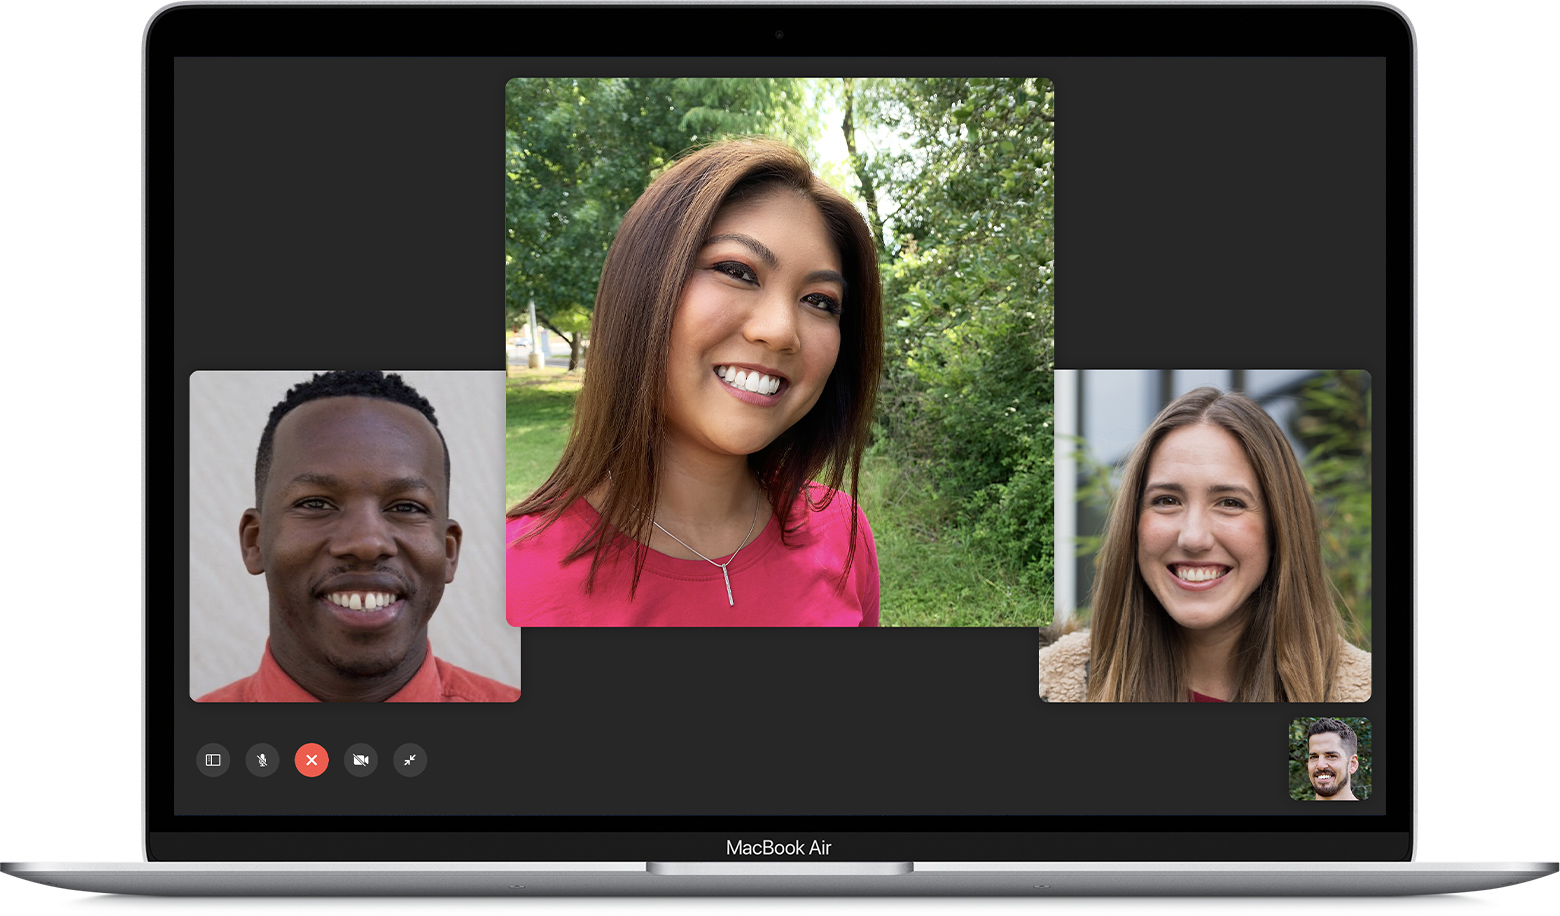 do Group FaceTime on Mac